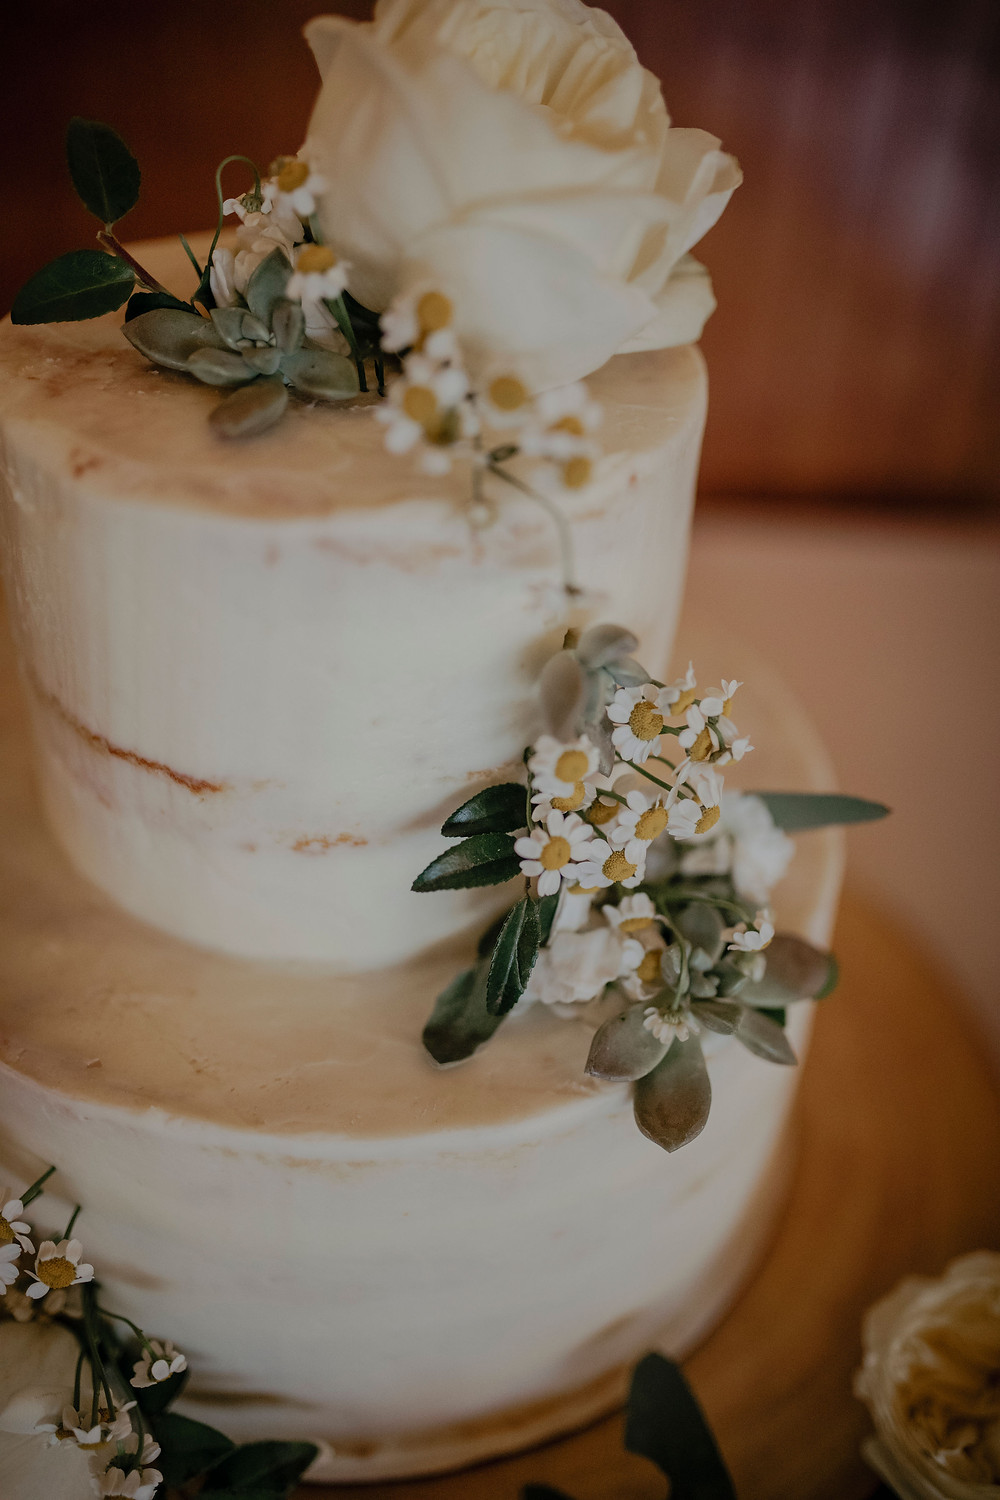 Cake with Wildflower accents